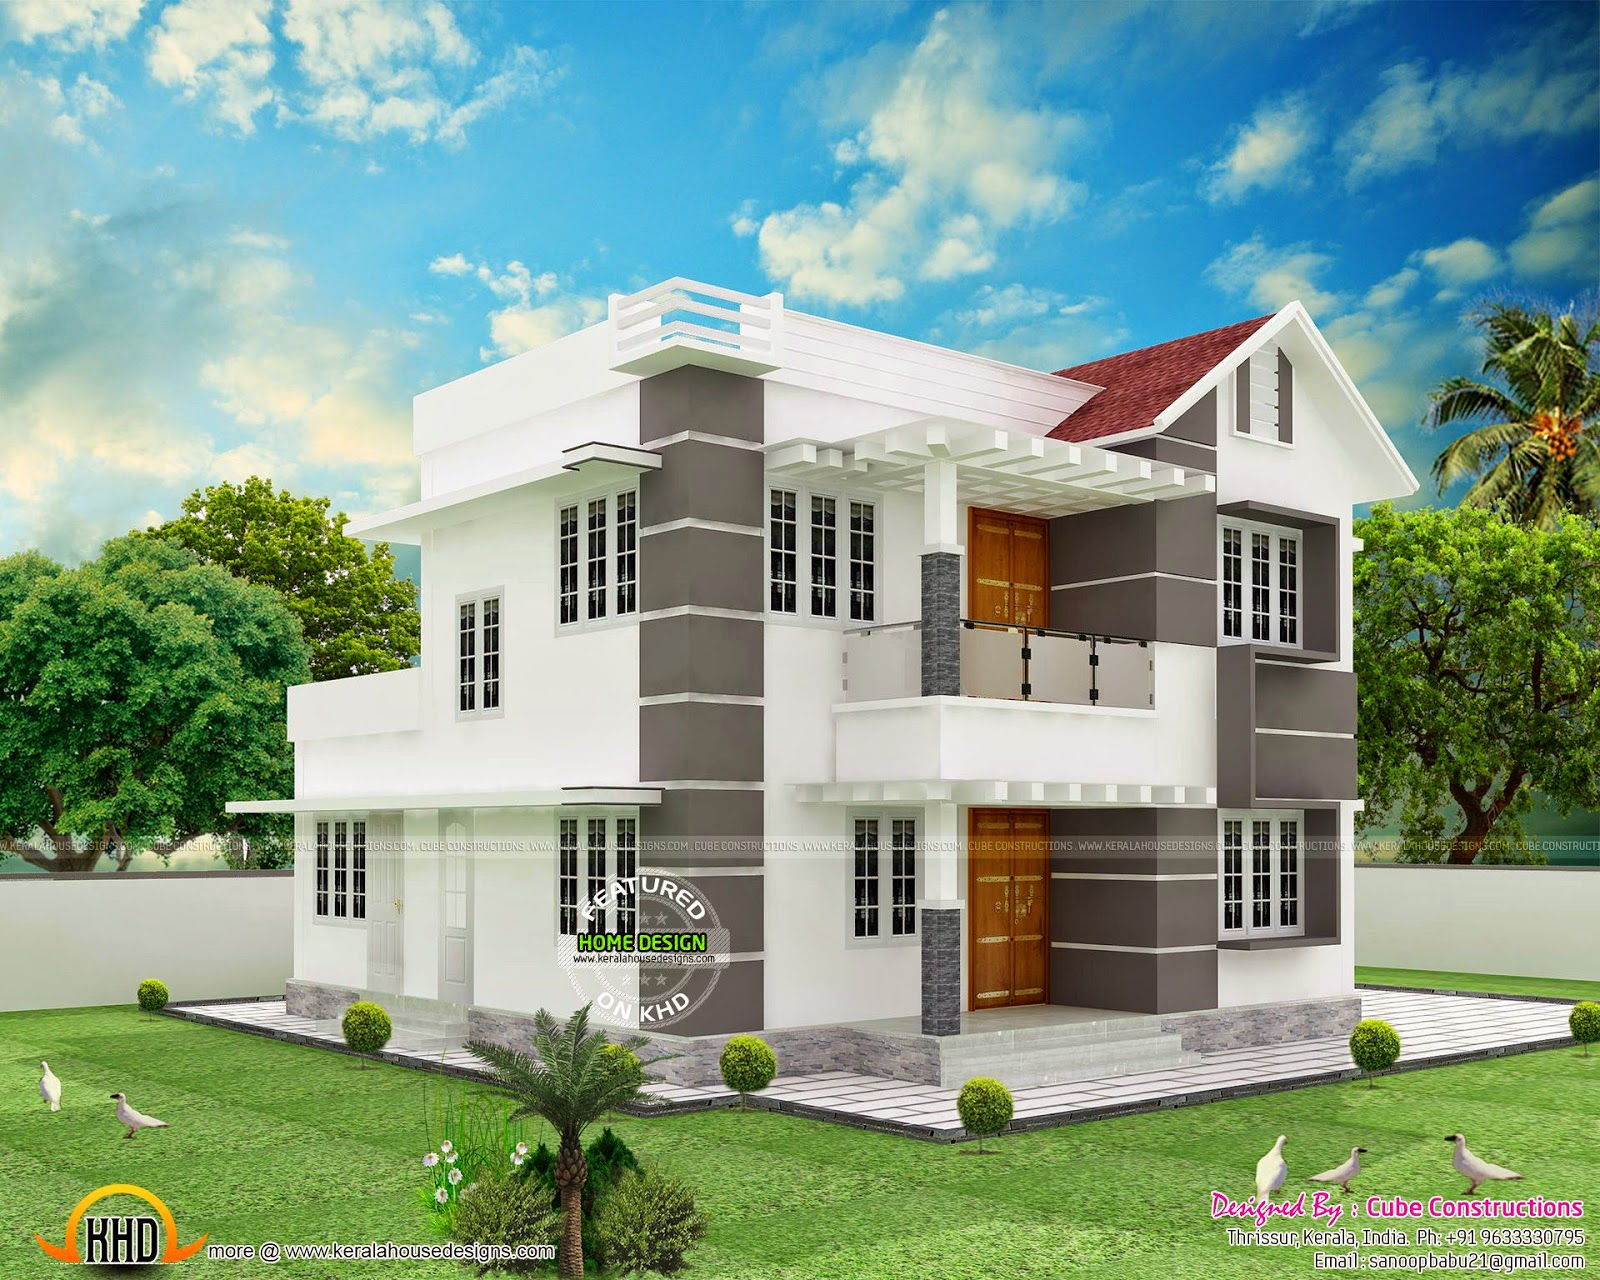 House design by cube constructions kerala home design for Modern cube house plans